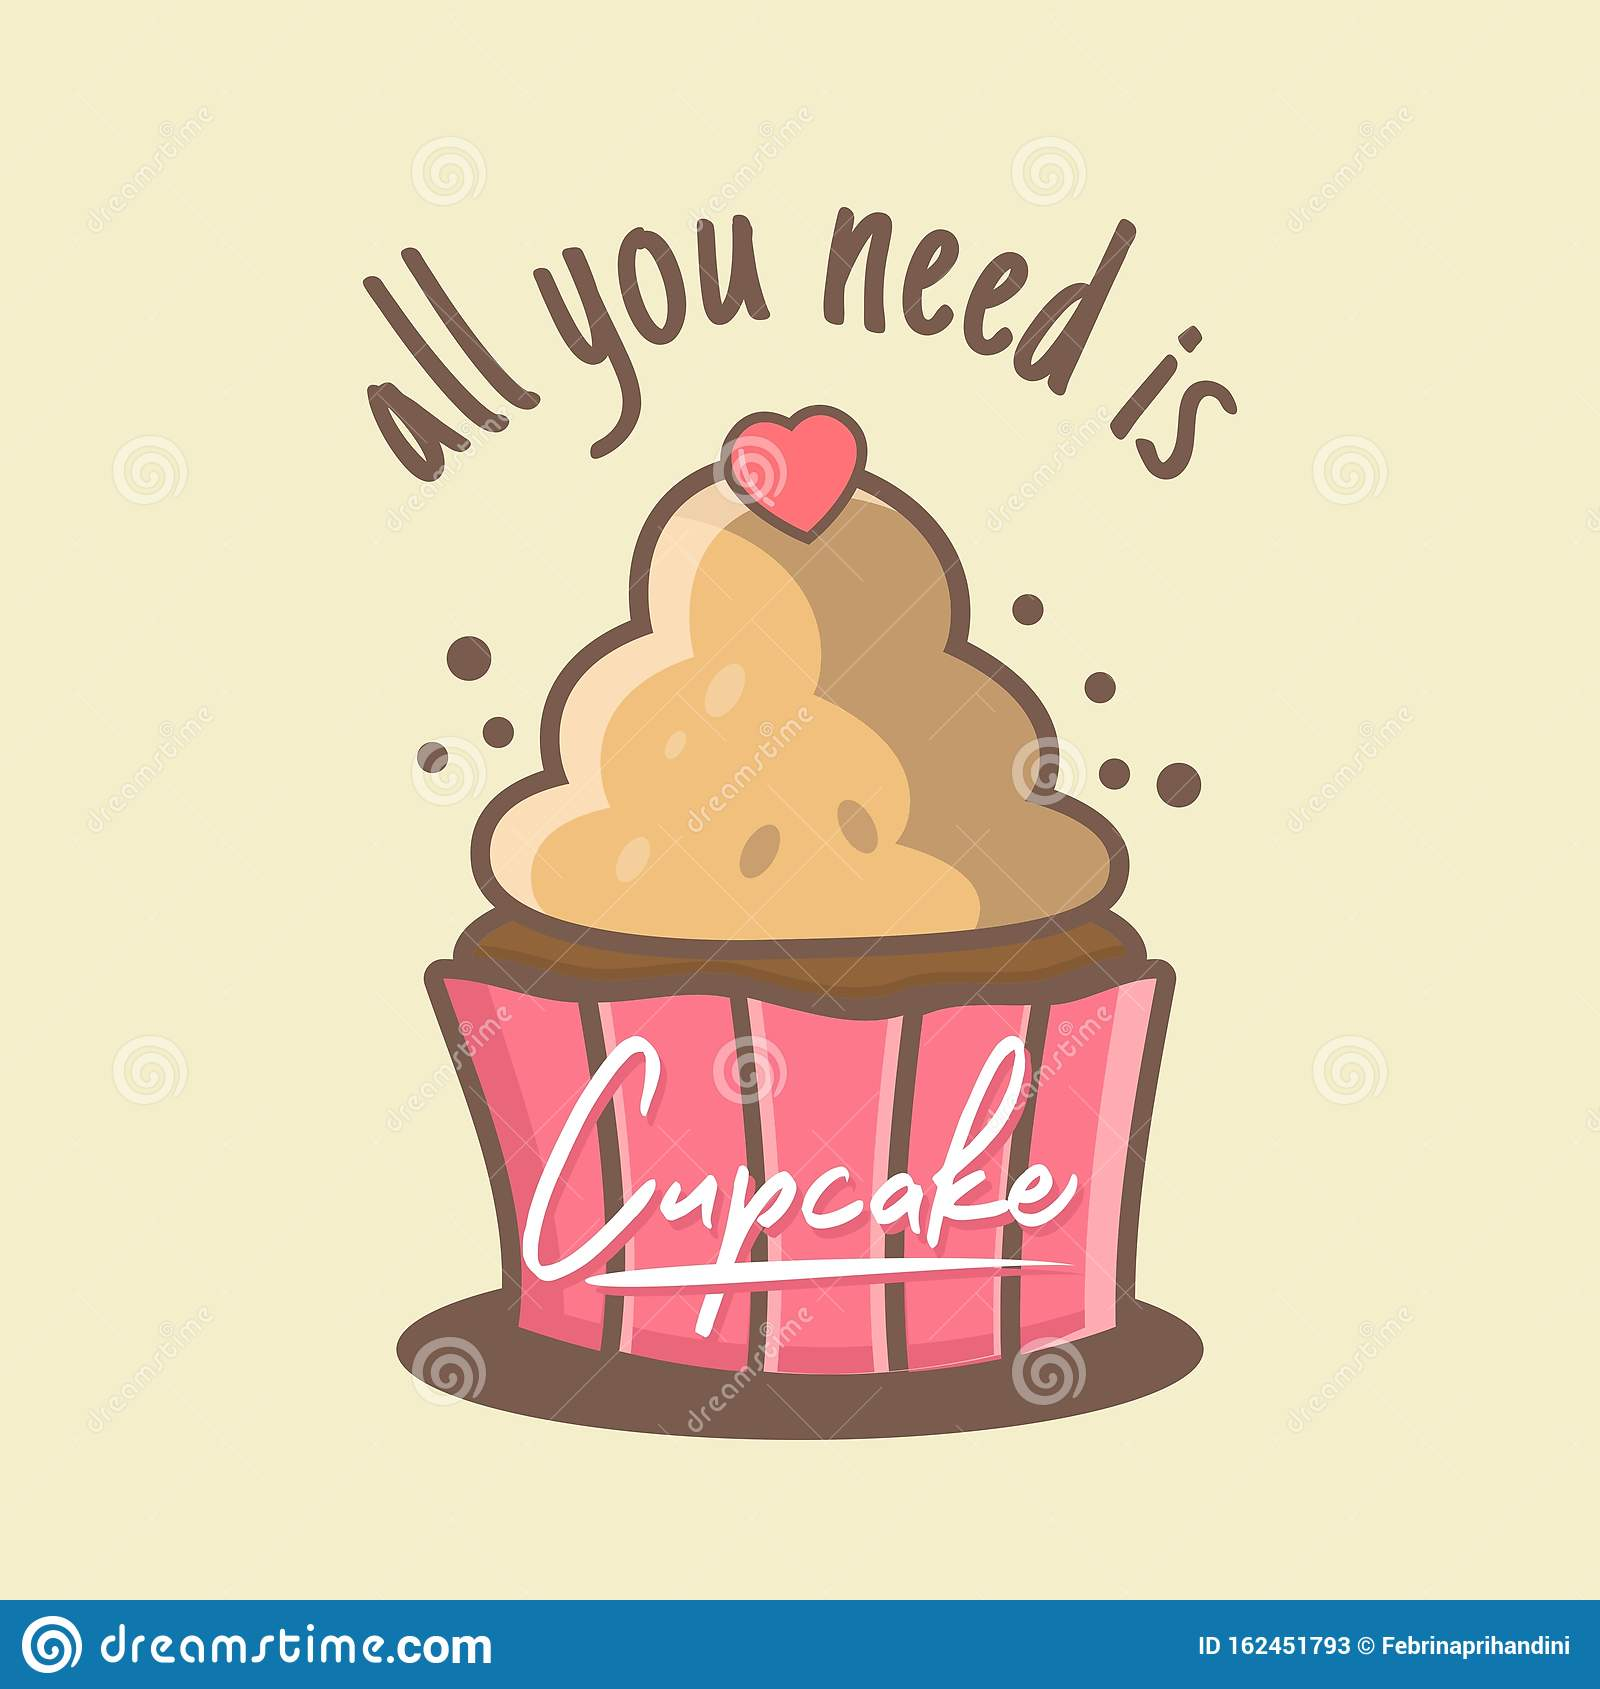 All You Need Is Cupcake Stock Vector Illustration Of Background 162451793